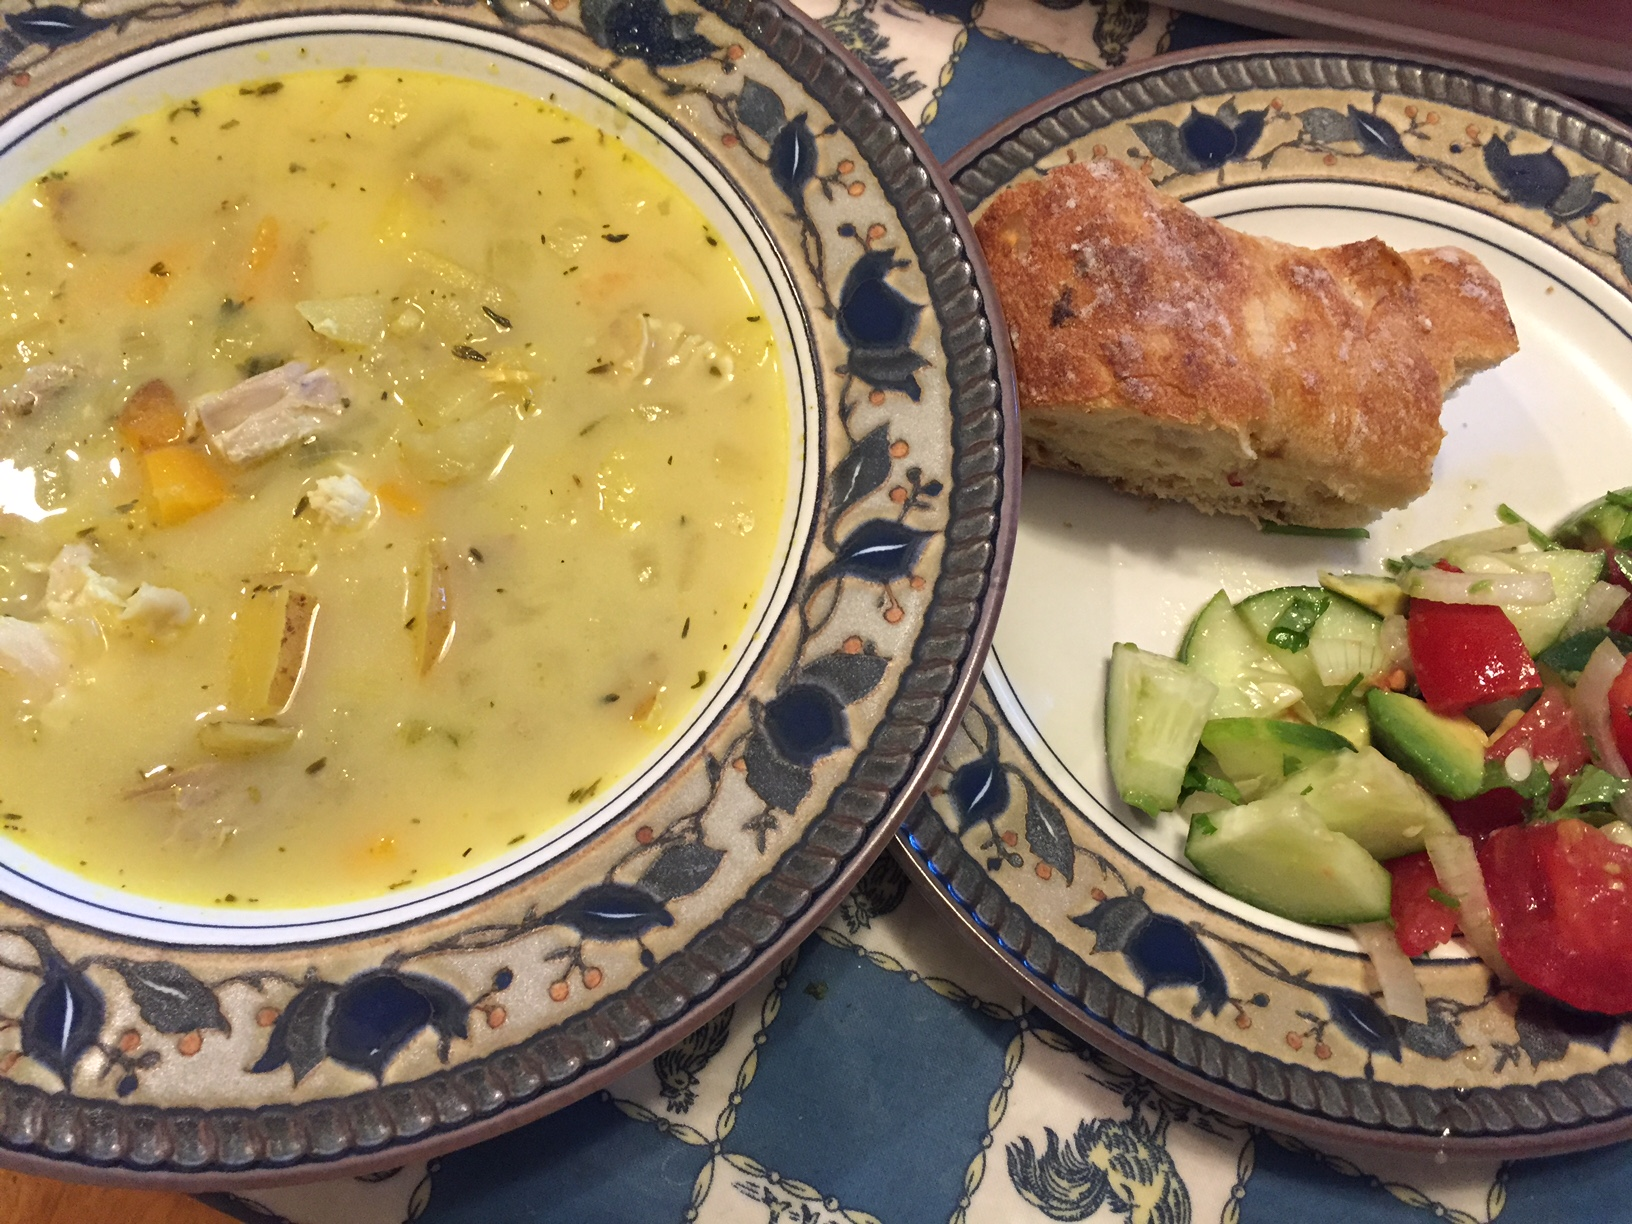 Curried Pork and Potato Soup and a summer chopped salad